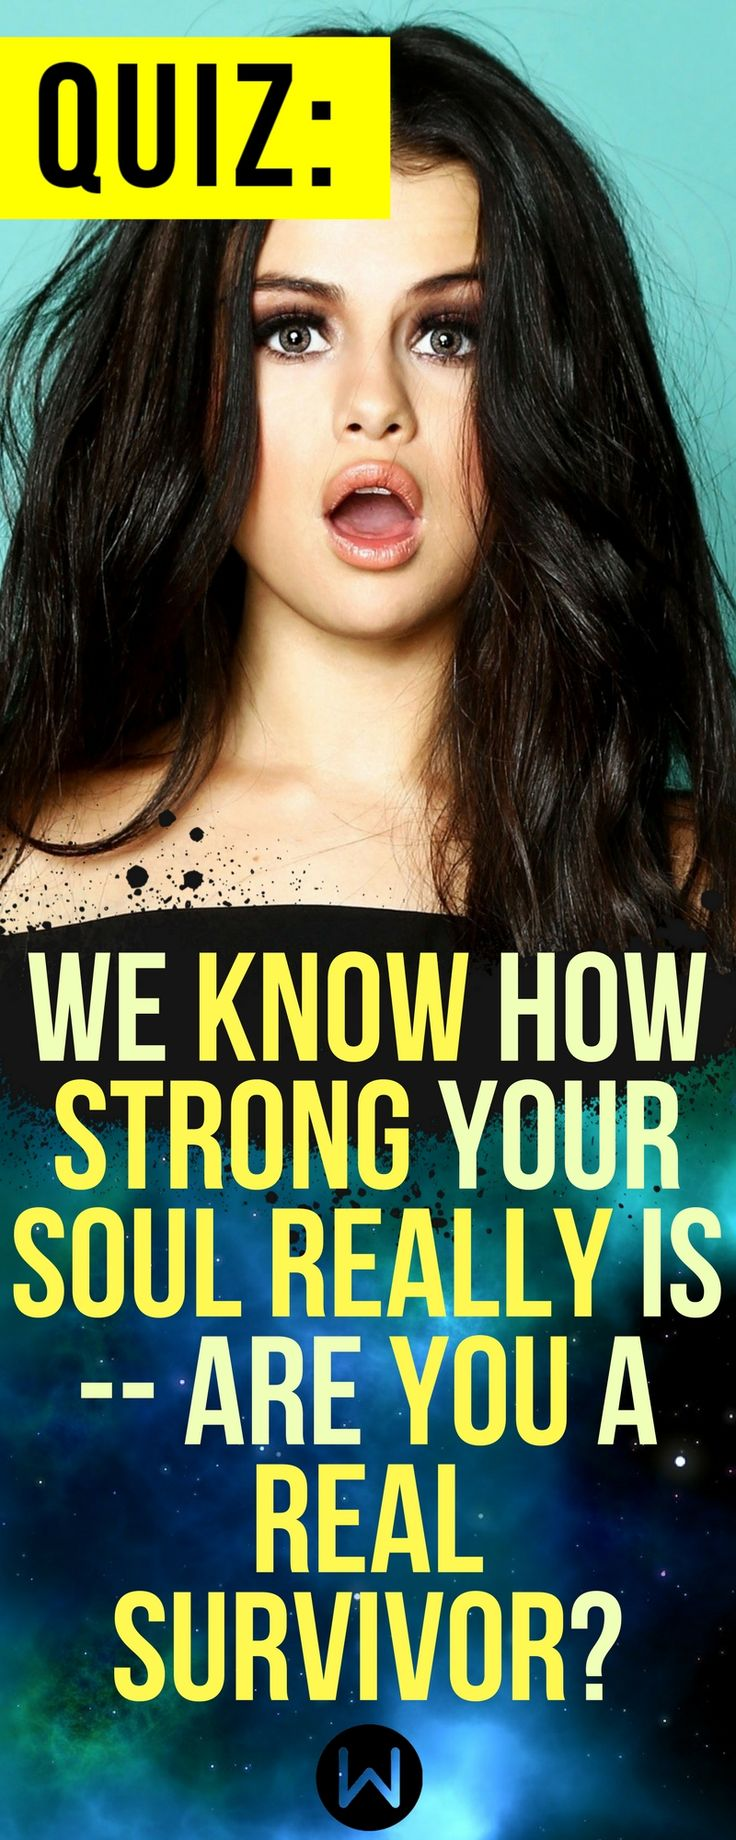 Quiz: Is your soul stronger than you think? About Yourself Quiz, Fun Quiz, Personality Test, Random Questions, Personality Quiz, Girl Quiz,Buzzfeed Quizzes, Playbuzz Quiz, Psychology, Personality Quizzes for Teens, Fun Tests, Personality Types